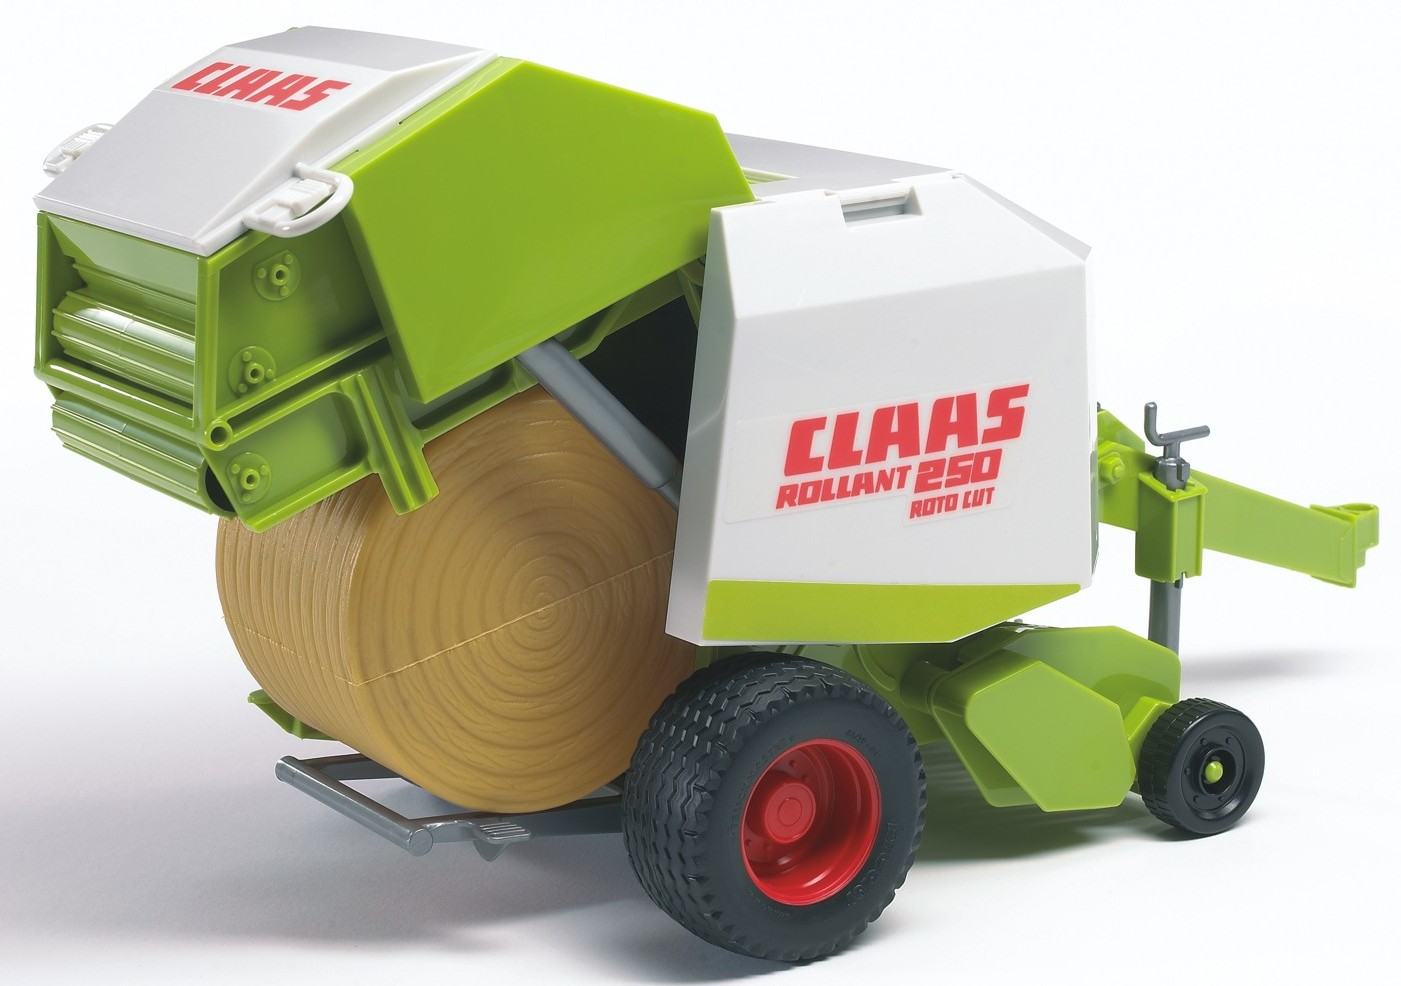 Bruder #02121 Claas Rollant 250 Straw Baler! -New-Factory Sealed #2121